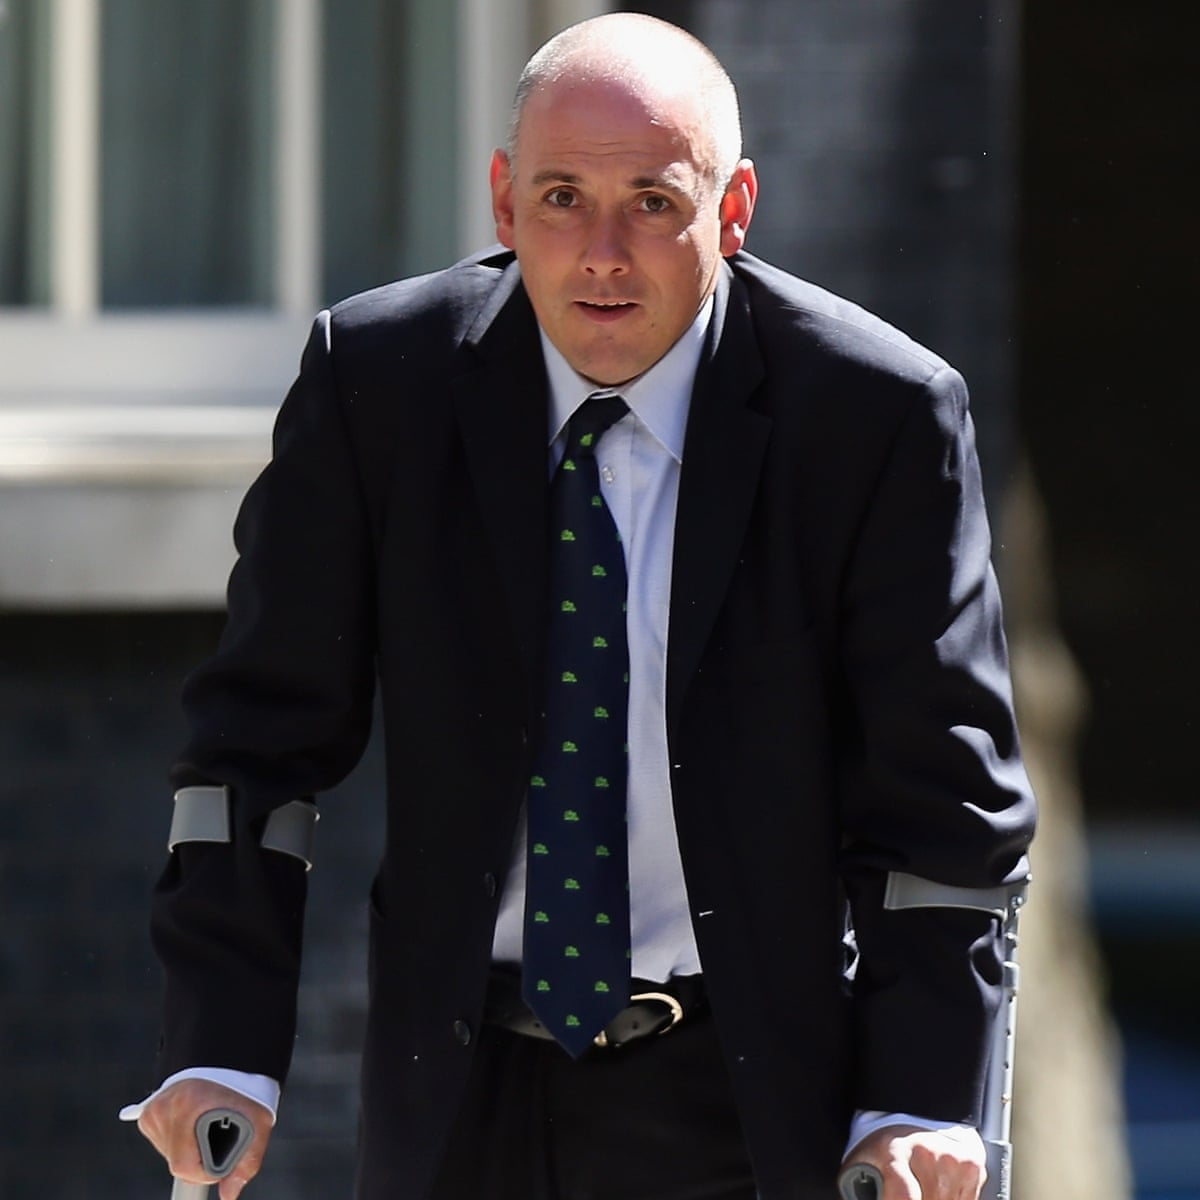 Tory minister Robert Halfon admits cheating on partner amid blackmail claims | Conservatives | The Guardian